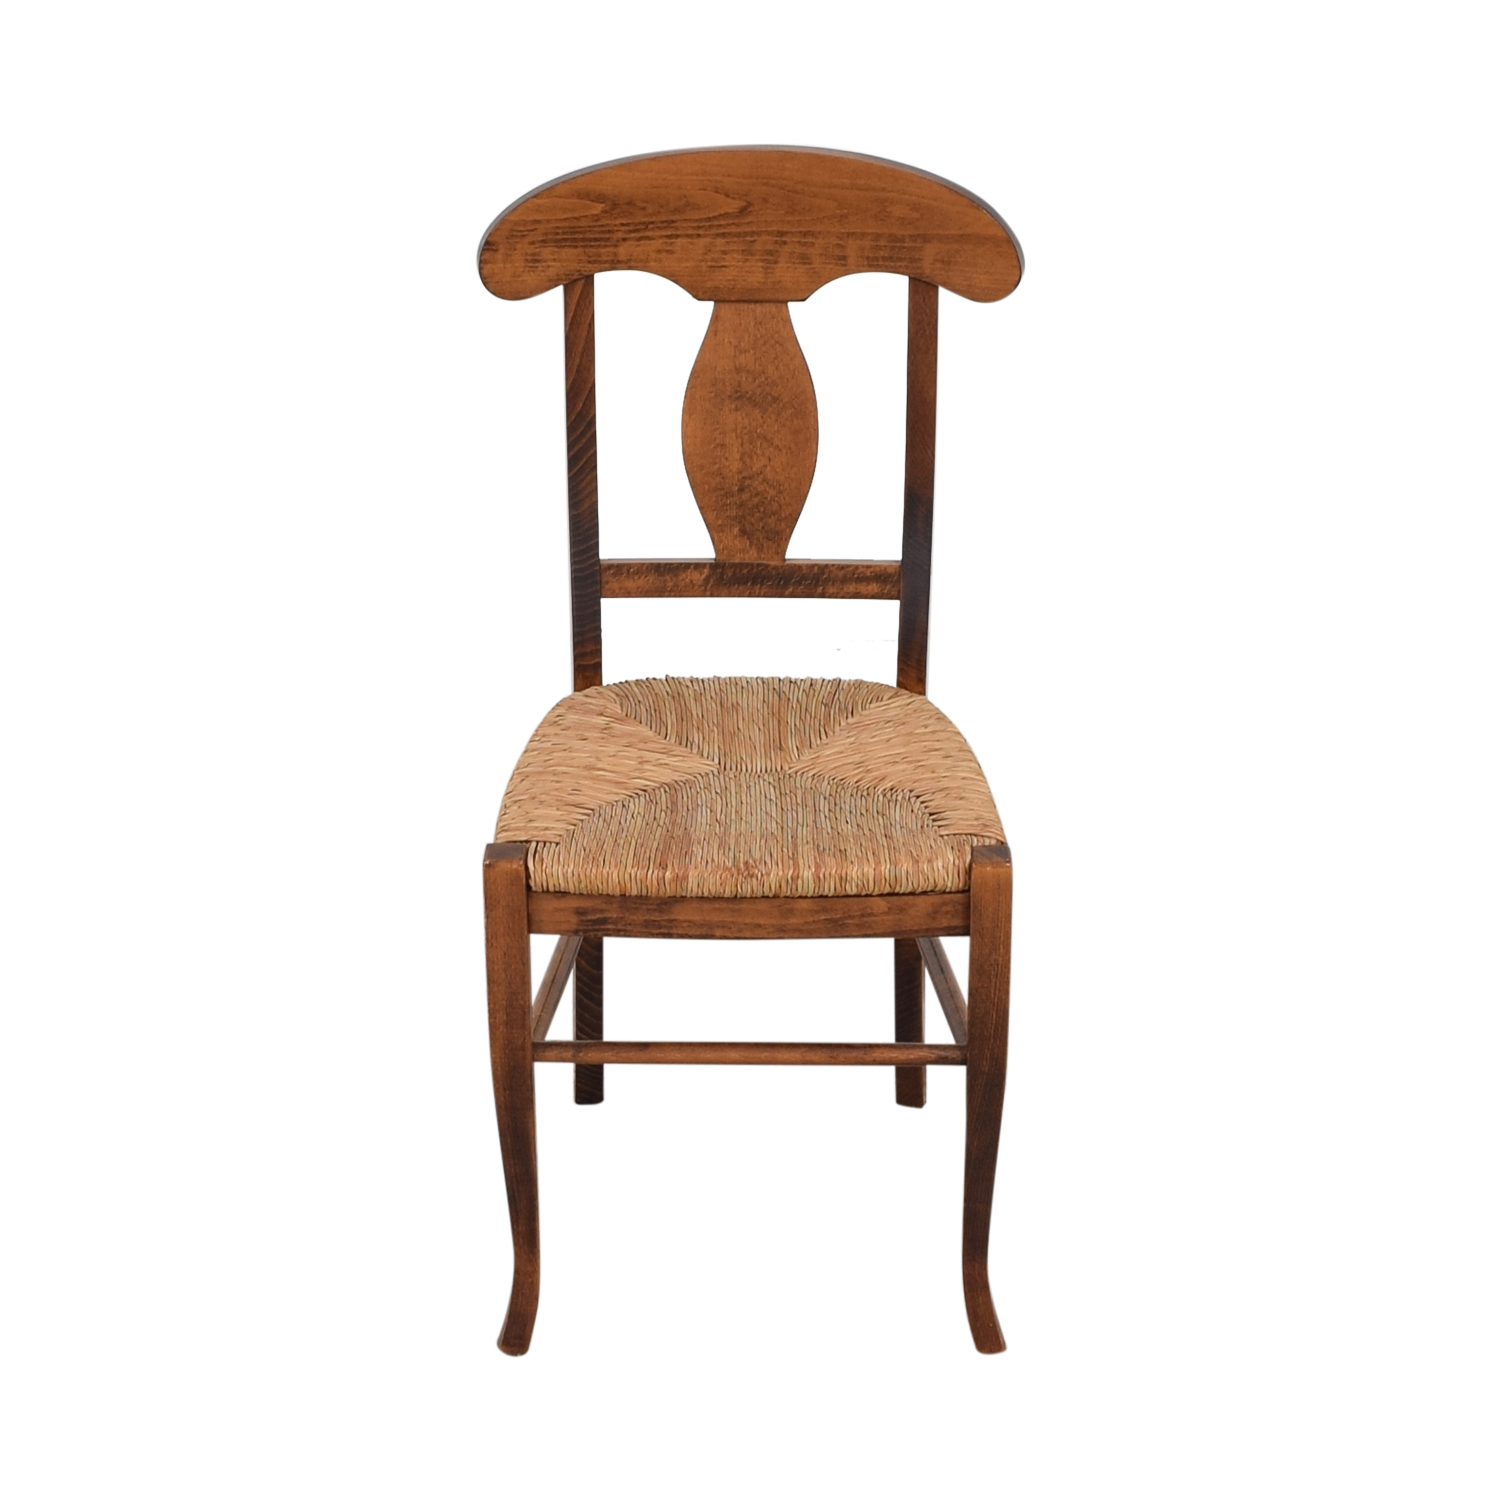 Italian Rush Seat Side Chair / Chairs